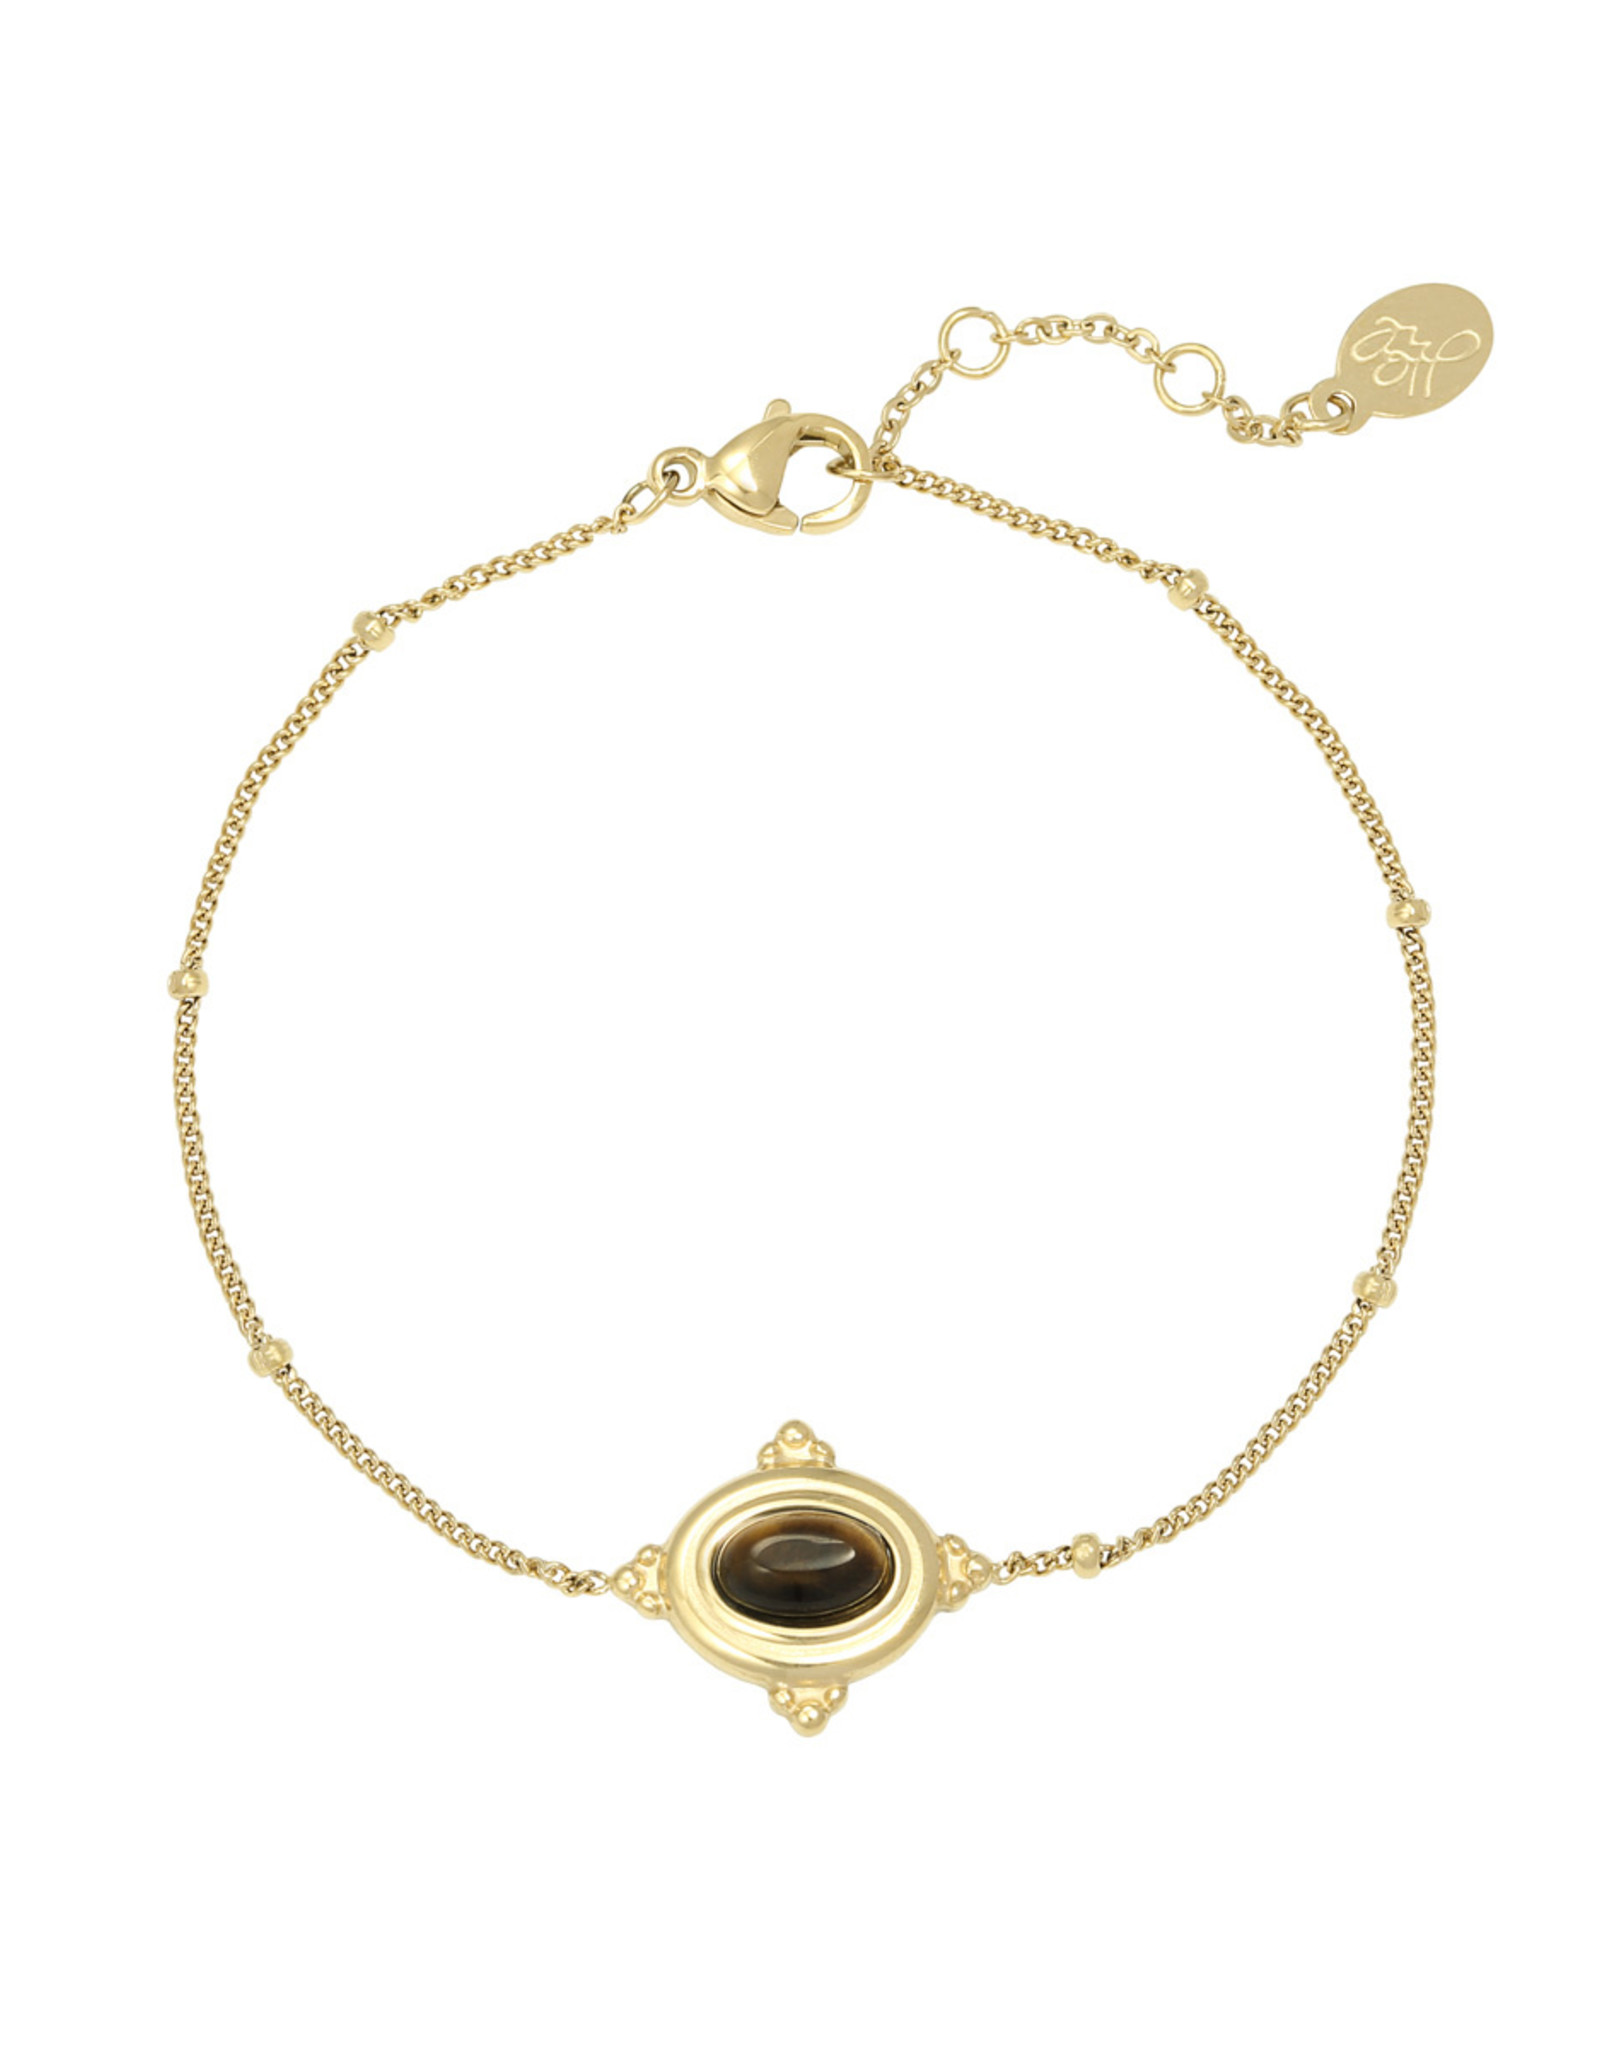 Make My Day MMD-Bracelet Gold